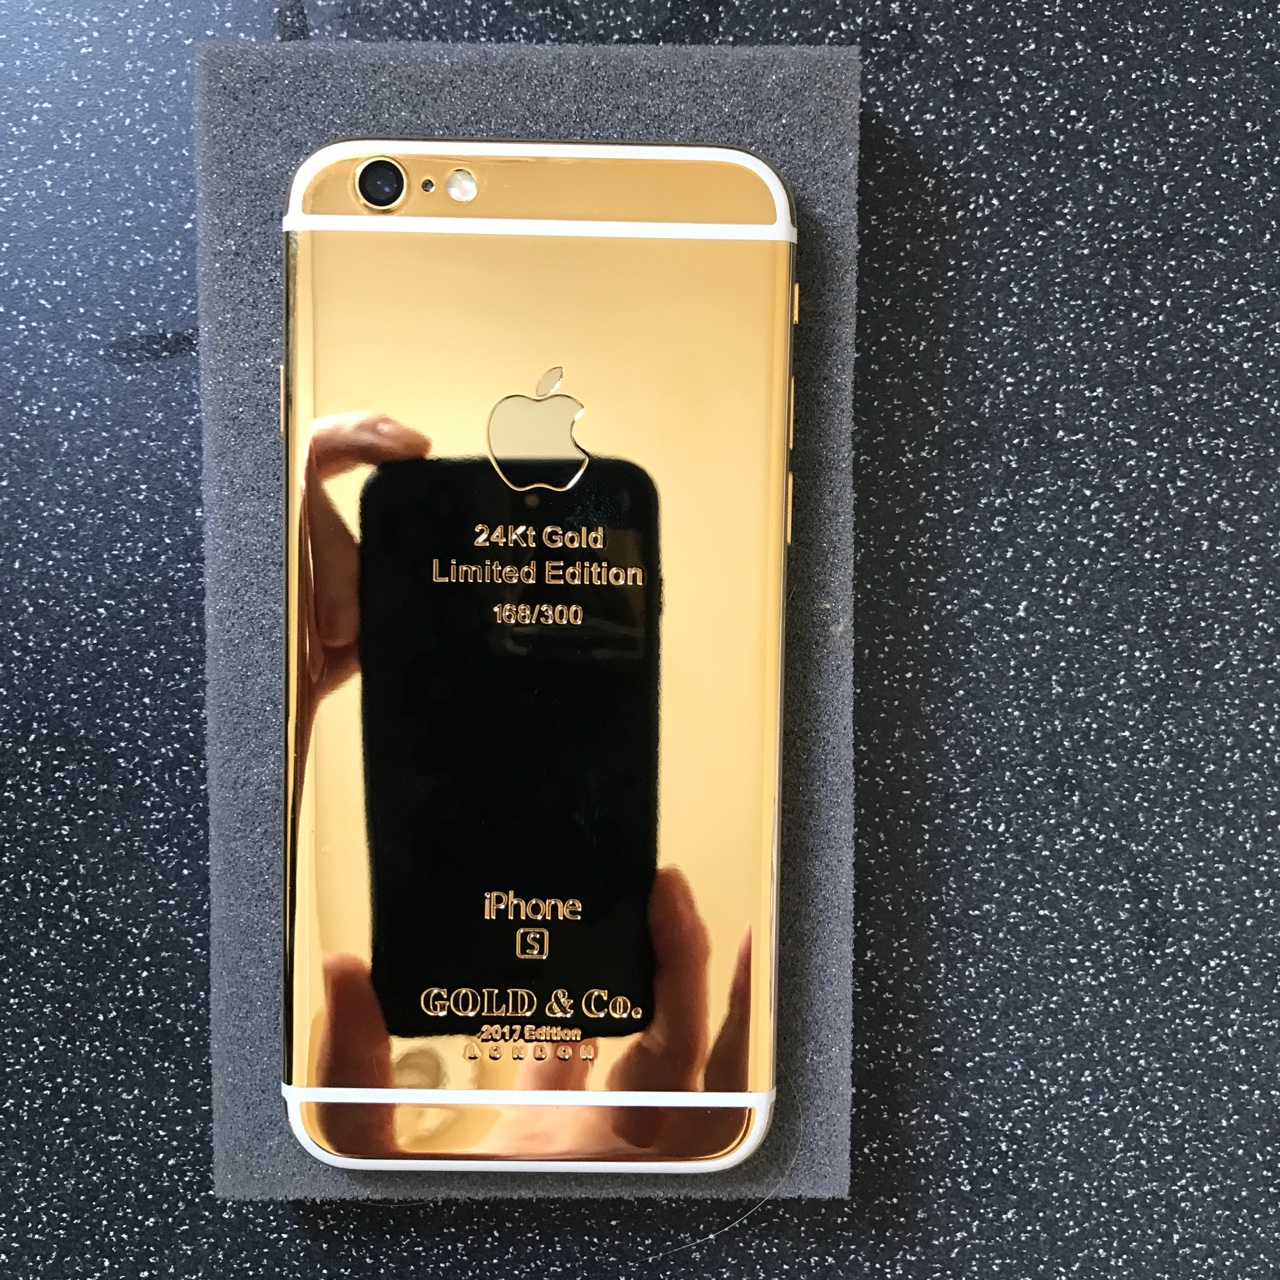 Gold Co 24kt Gold Iphone 6s 64gb 2017 Edition One Depop